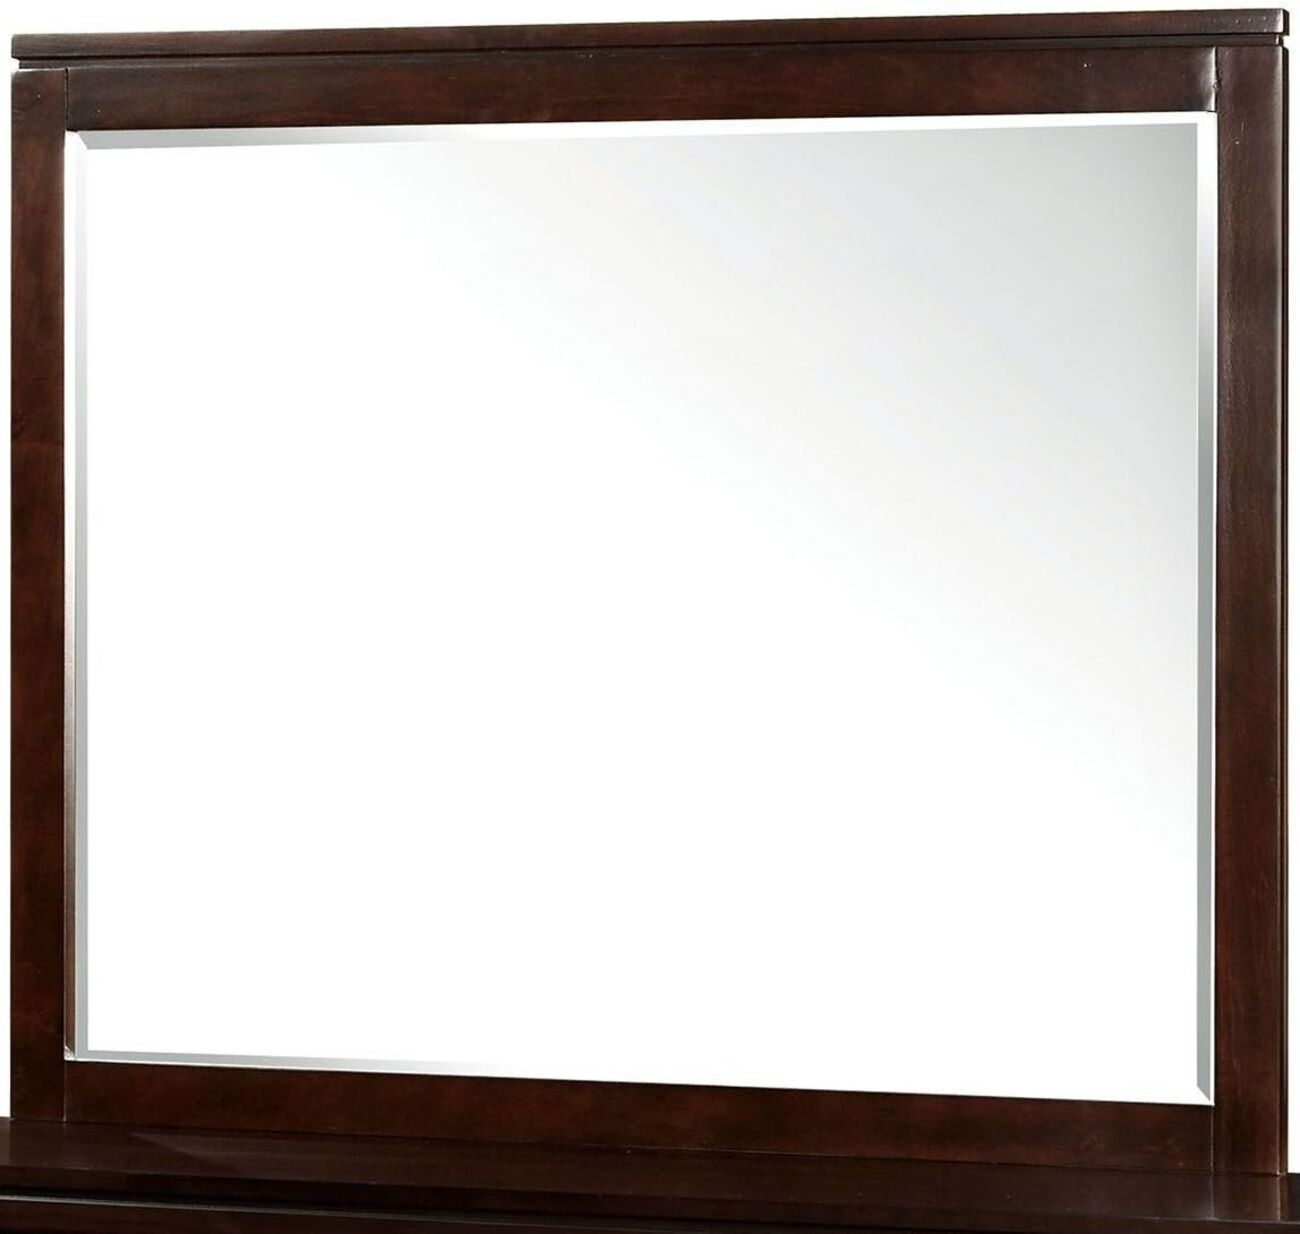 Balfour Transitional Style Mirror , Brown Cherry